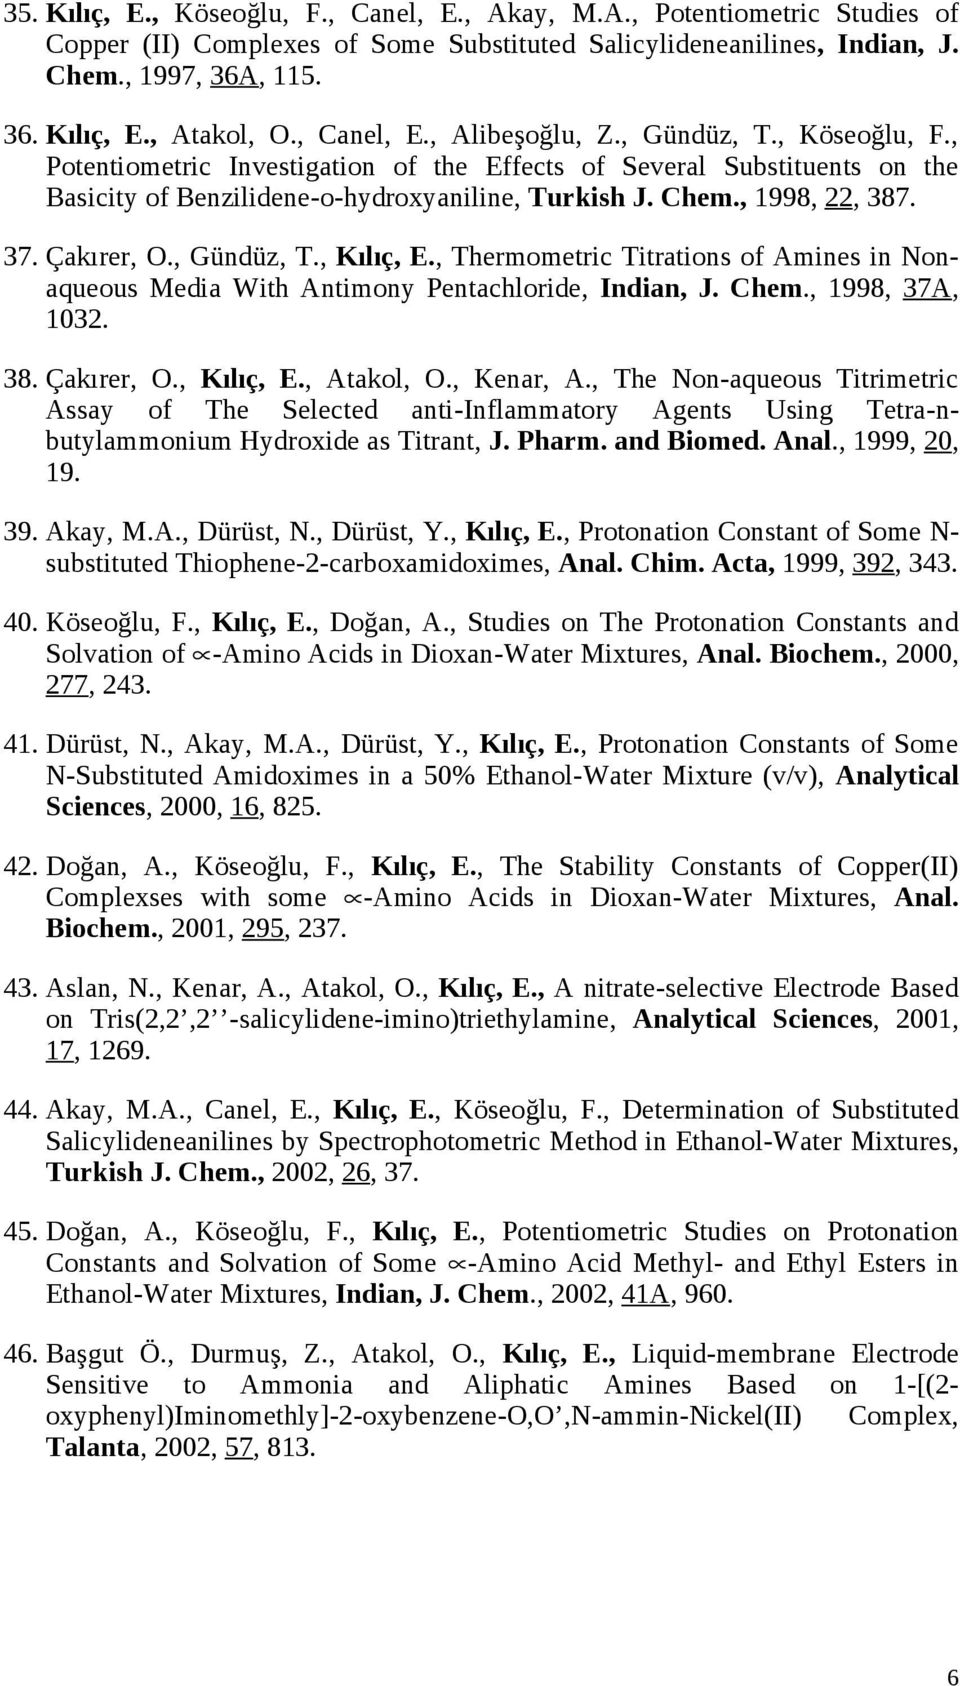 , 1998, 22, 387. 37. Çakırer, O., Gündüz, T., Kılıç, E., Thermometric Titrations of Amines in Nonaqueous Media With Antimony Pentachloride, Indian, J. Chem., 1998, 37A, 1032. 38. Çakırer, O., Kılıç, E., Atakol, O.